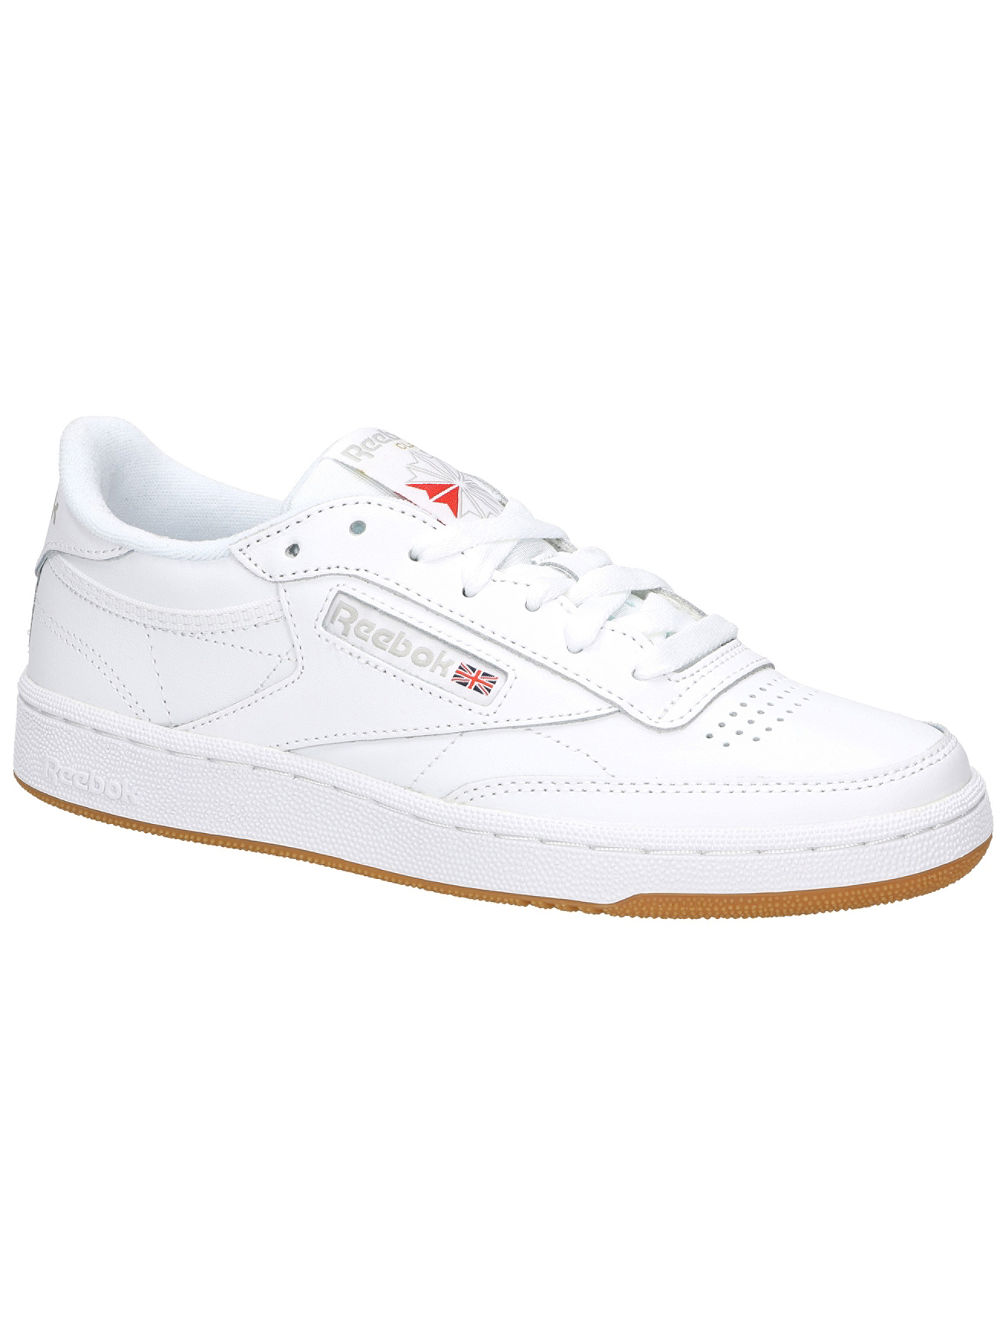 701f1fe8f444 Buy Reebok Club C85 Sneakers online at blue-tomato.com